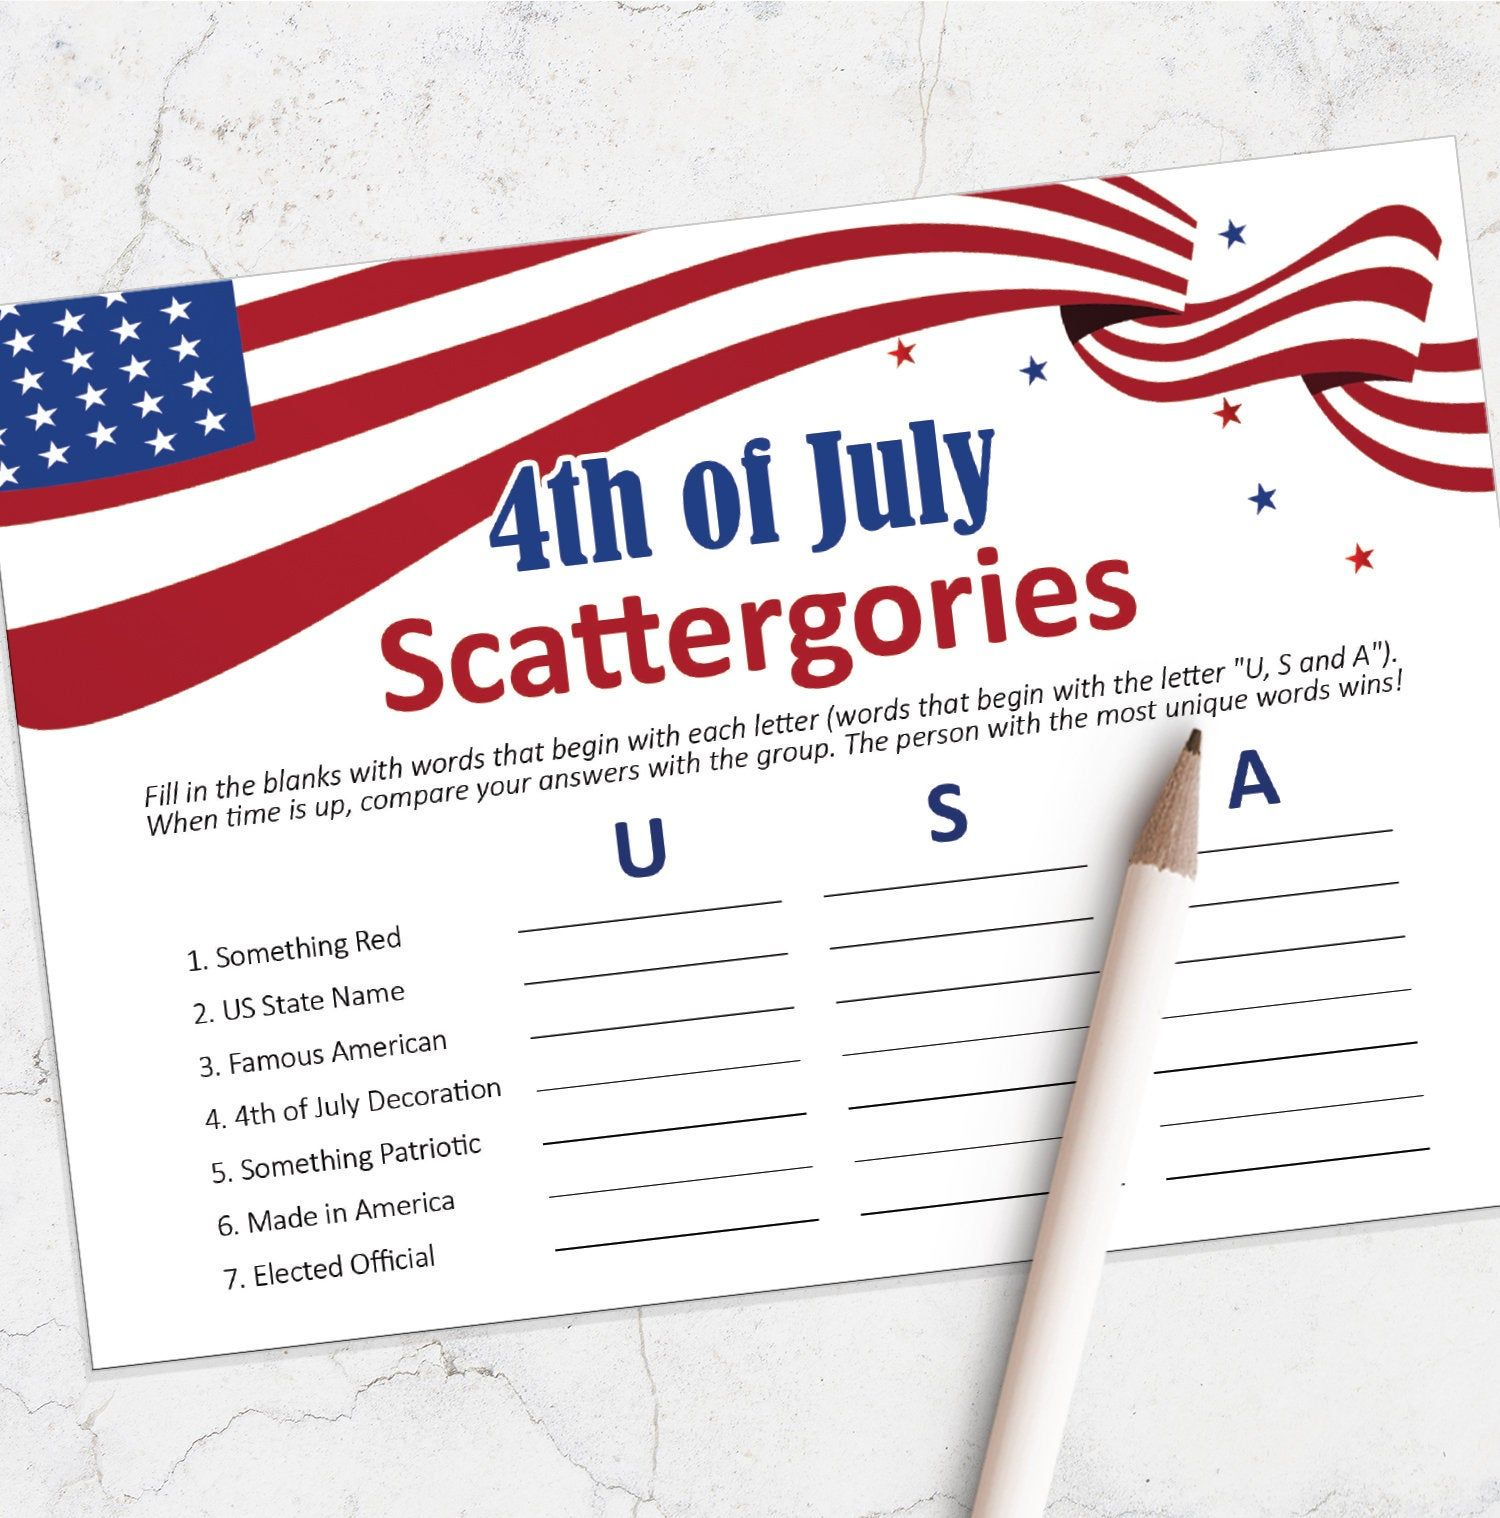 4th of July printable game printable scattergories game